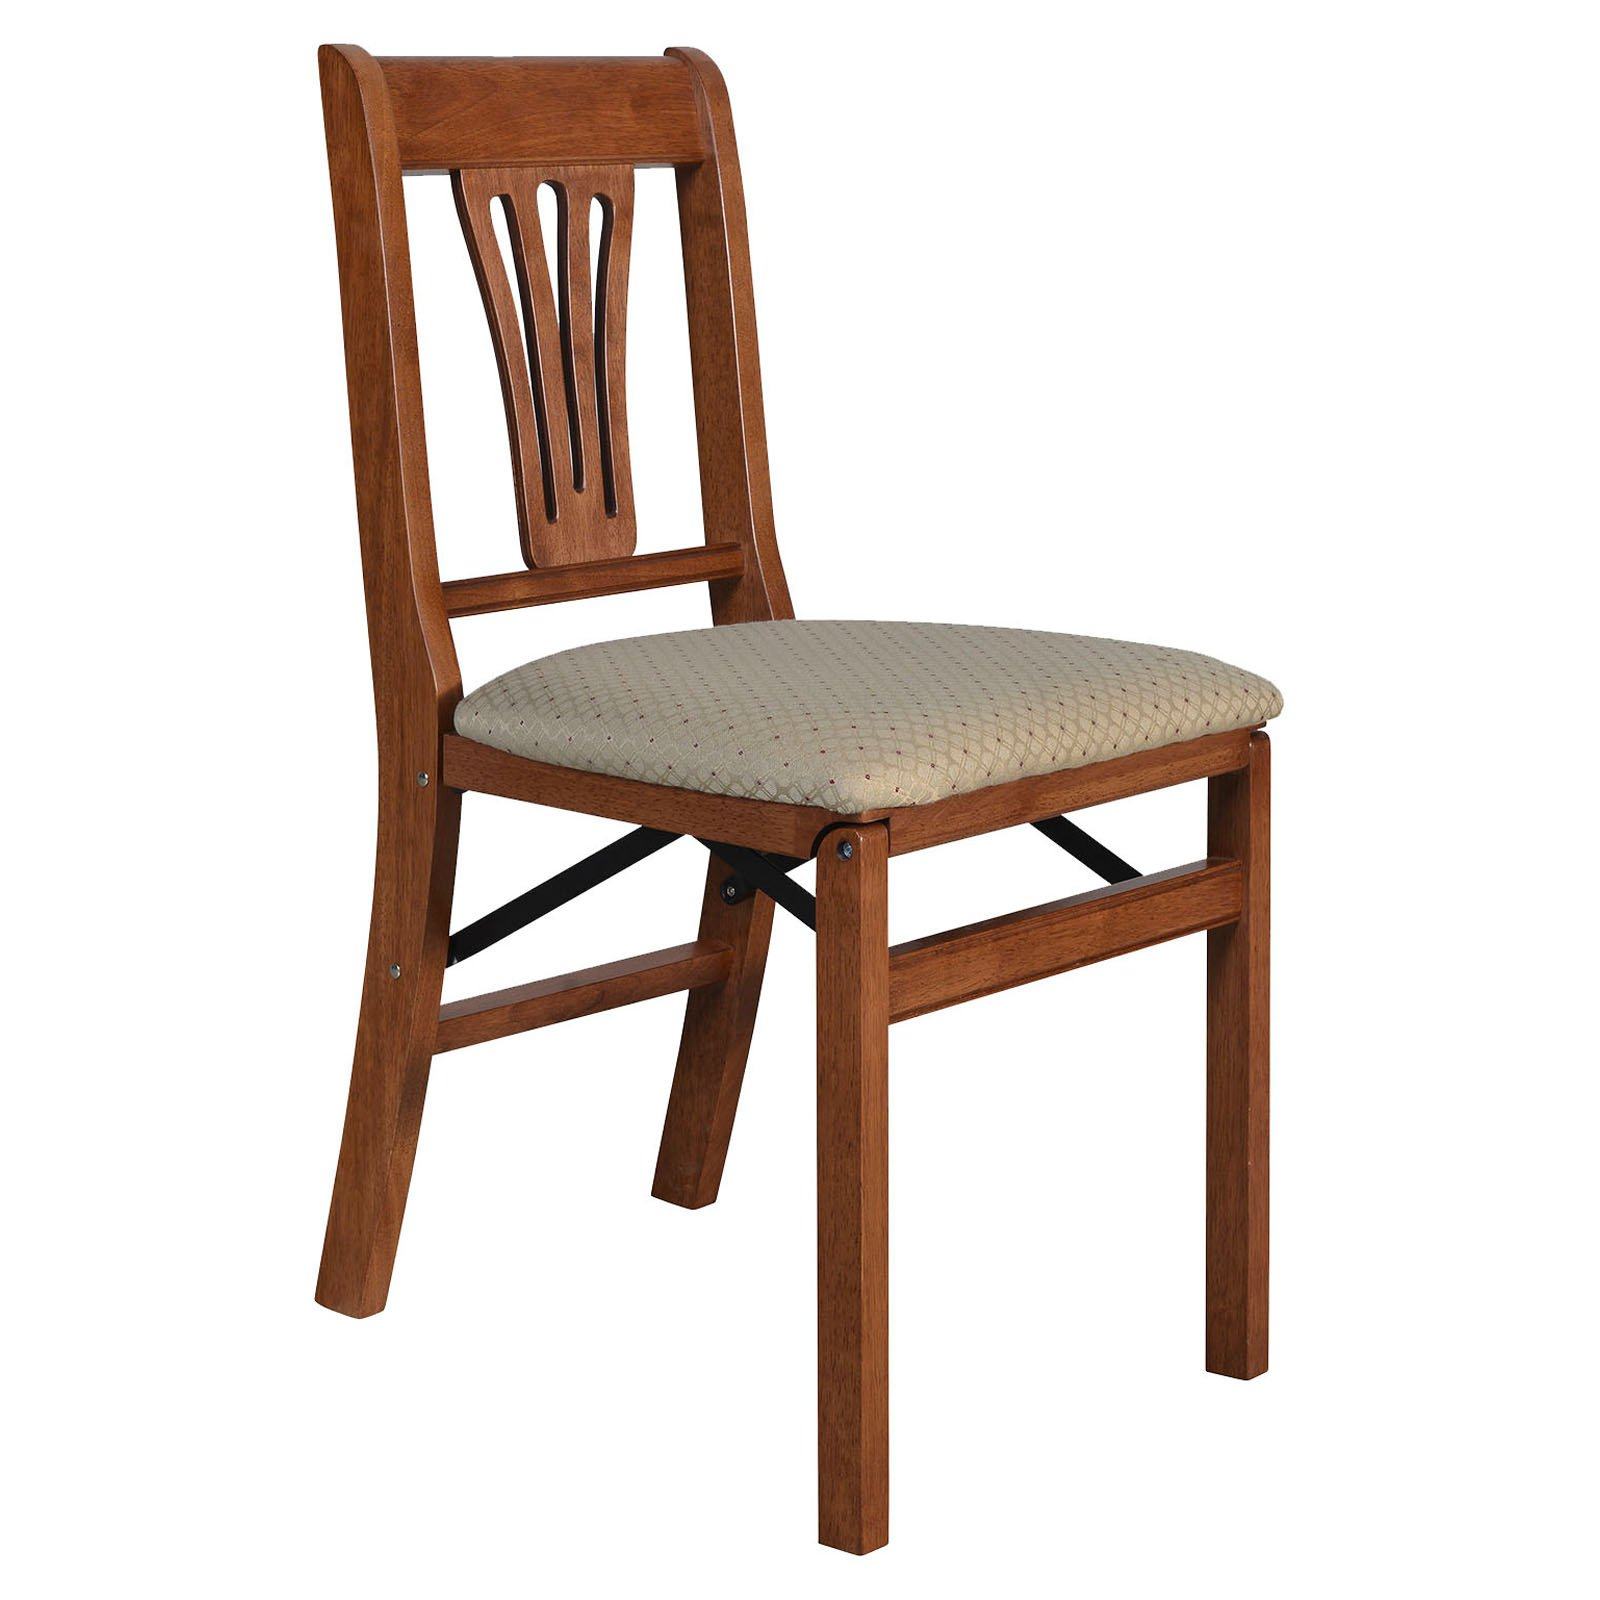 Urn Back Folding Chair in Warm Cherry Finish - Set of 2